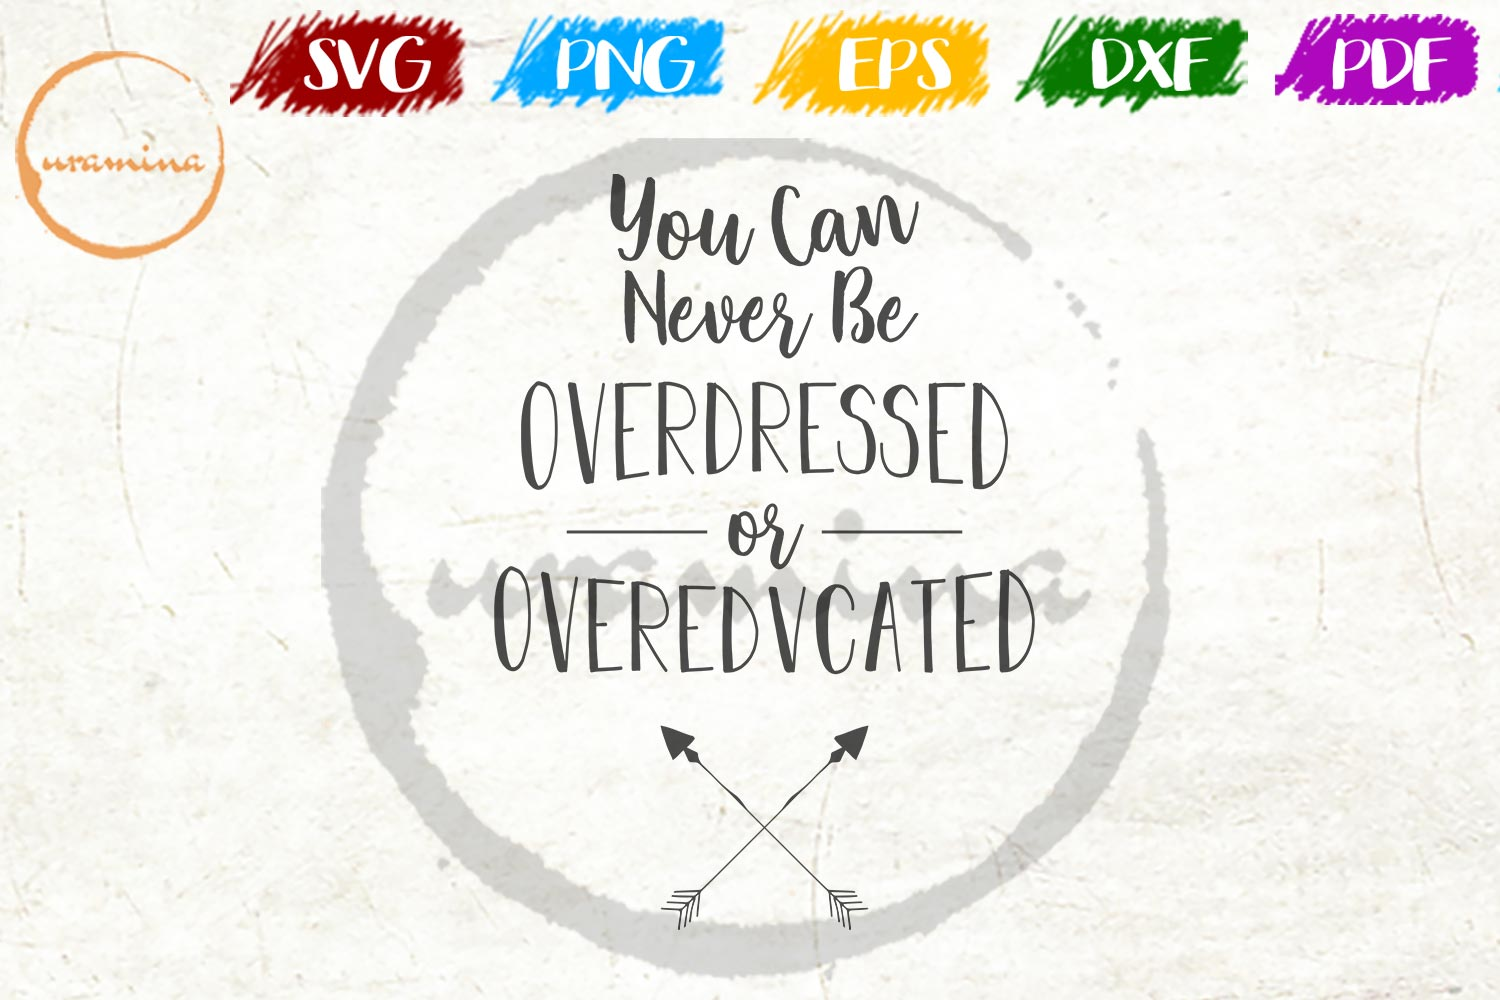 Download Free You Can Never Be Overdressed Graphic By Uramina Creative Fabrica for Cricut Explore, Silhouette and other cutting machines.